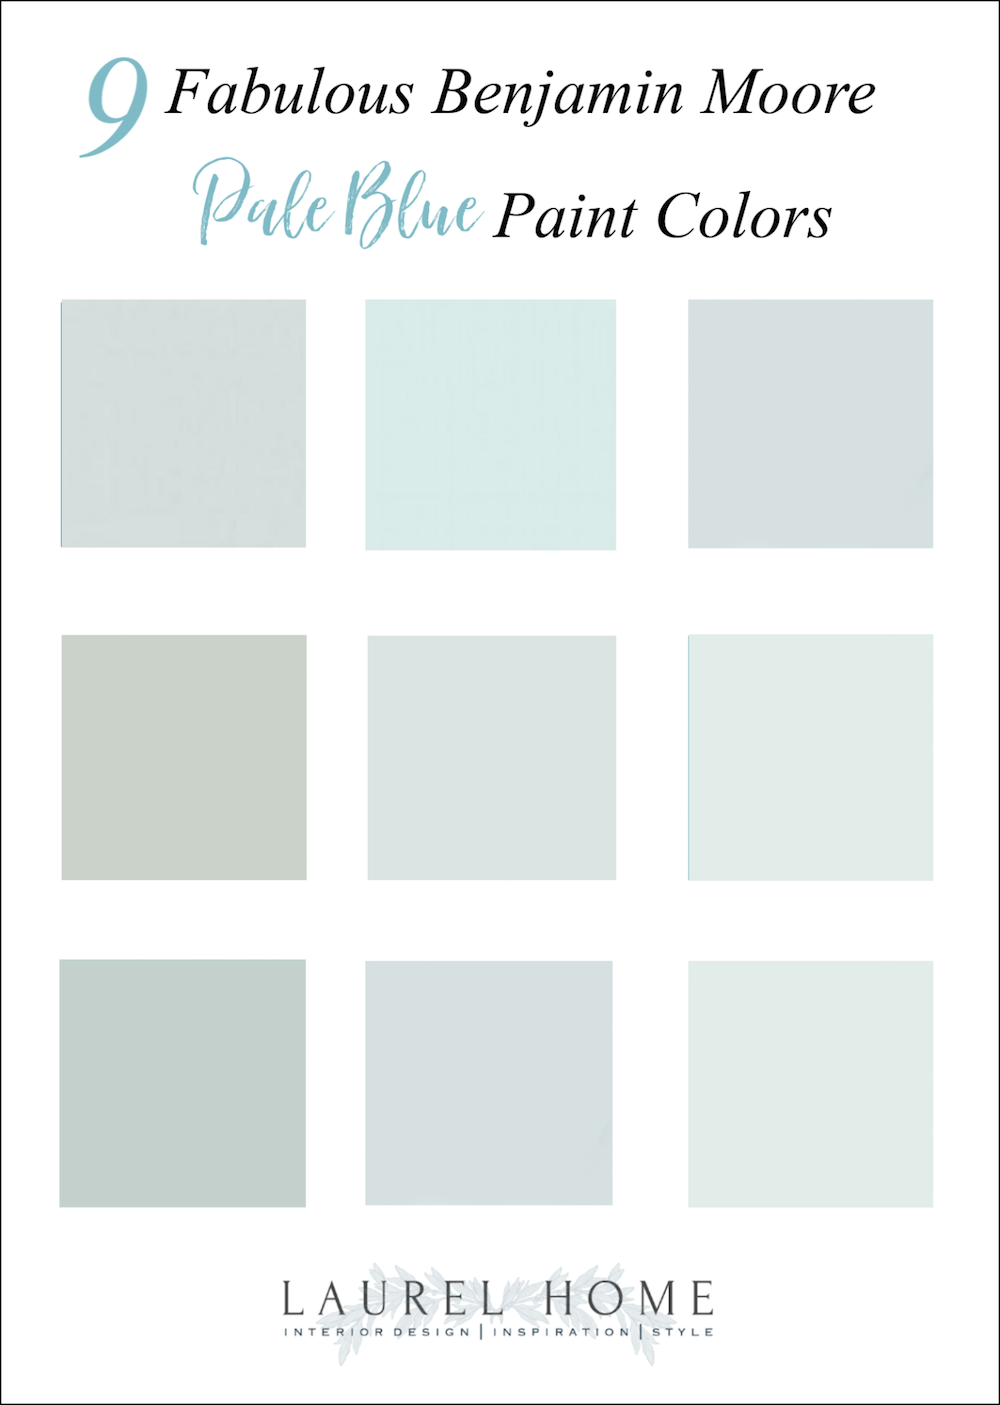 Common Mistakes When Choosing The Best Pale Blue Paint Pale Blue Paints Pale Blue Paint Colors Blue Paint Colors,Different Types Of Purple